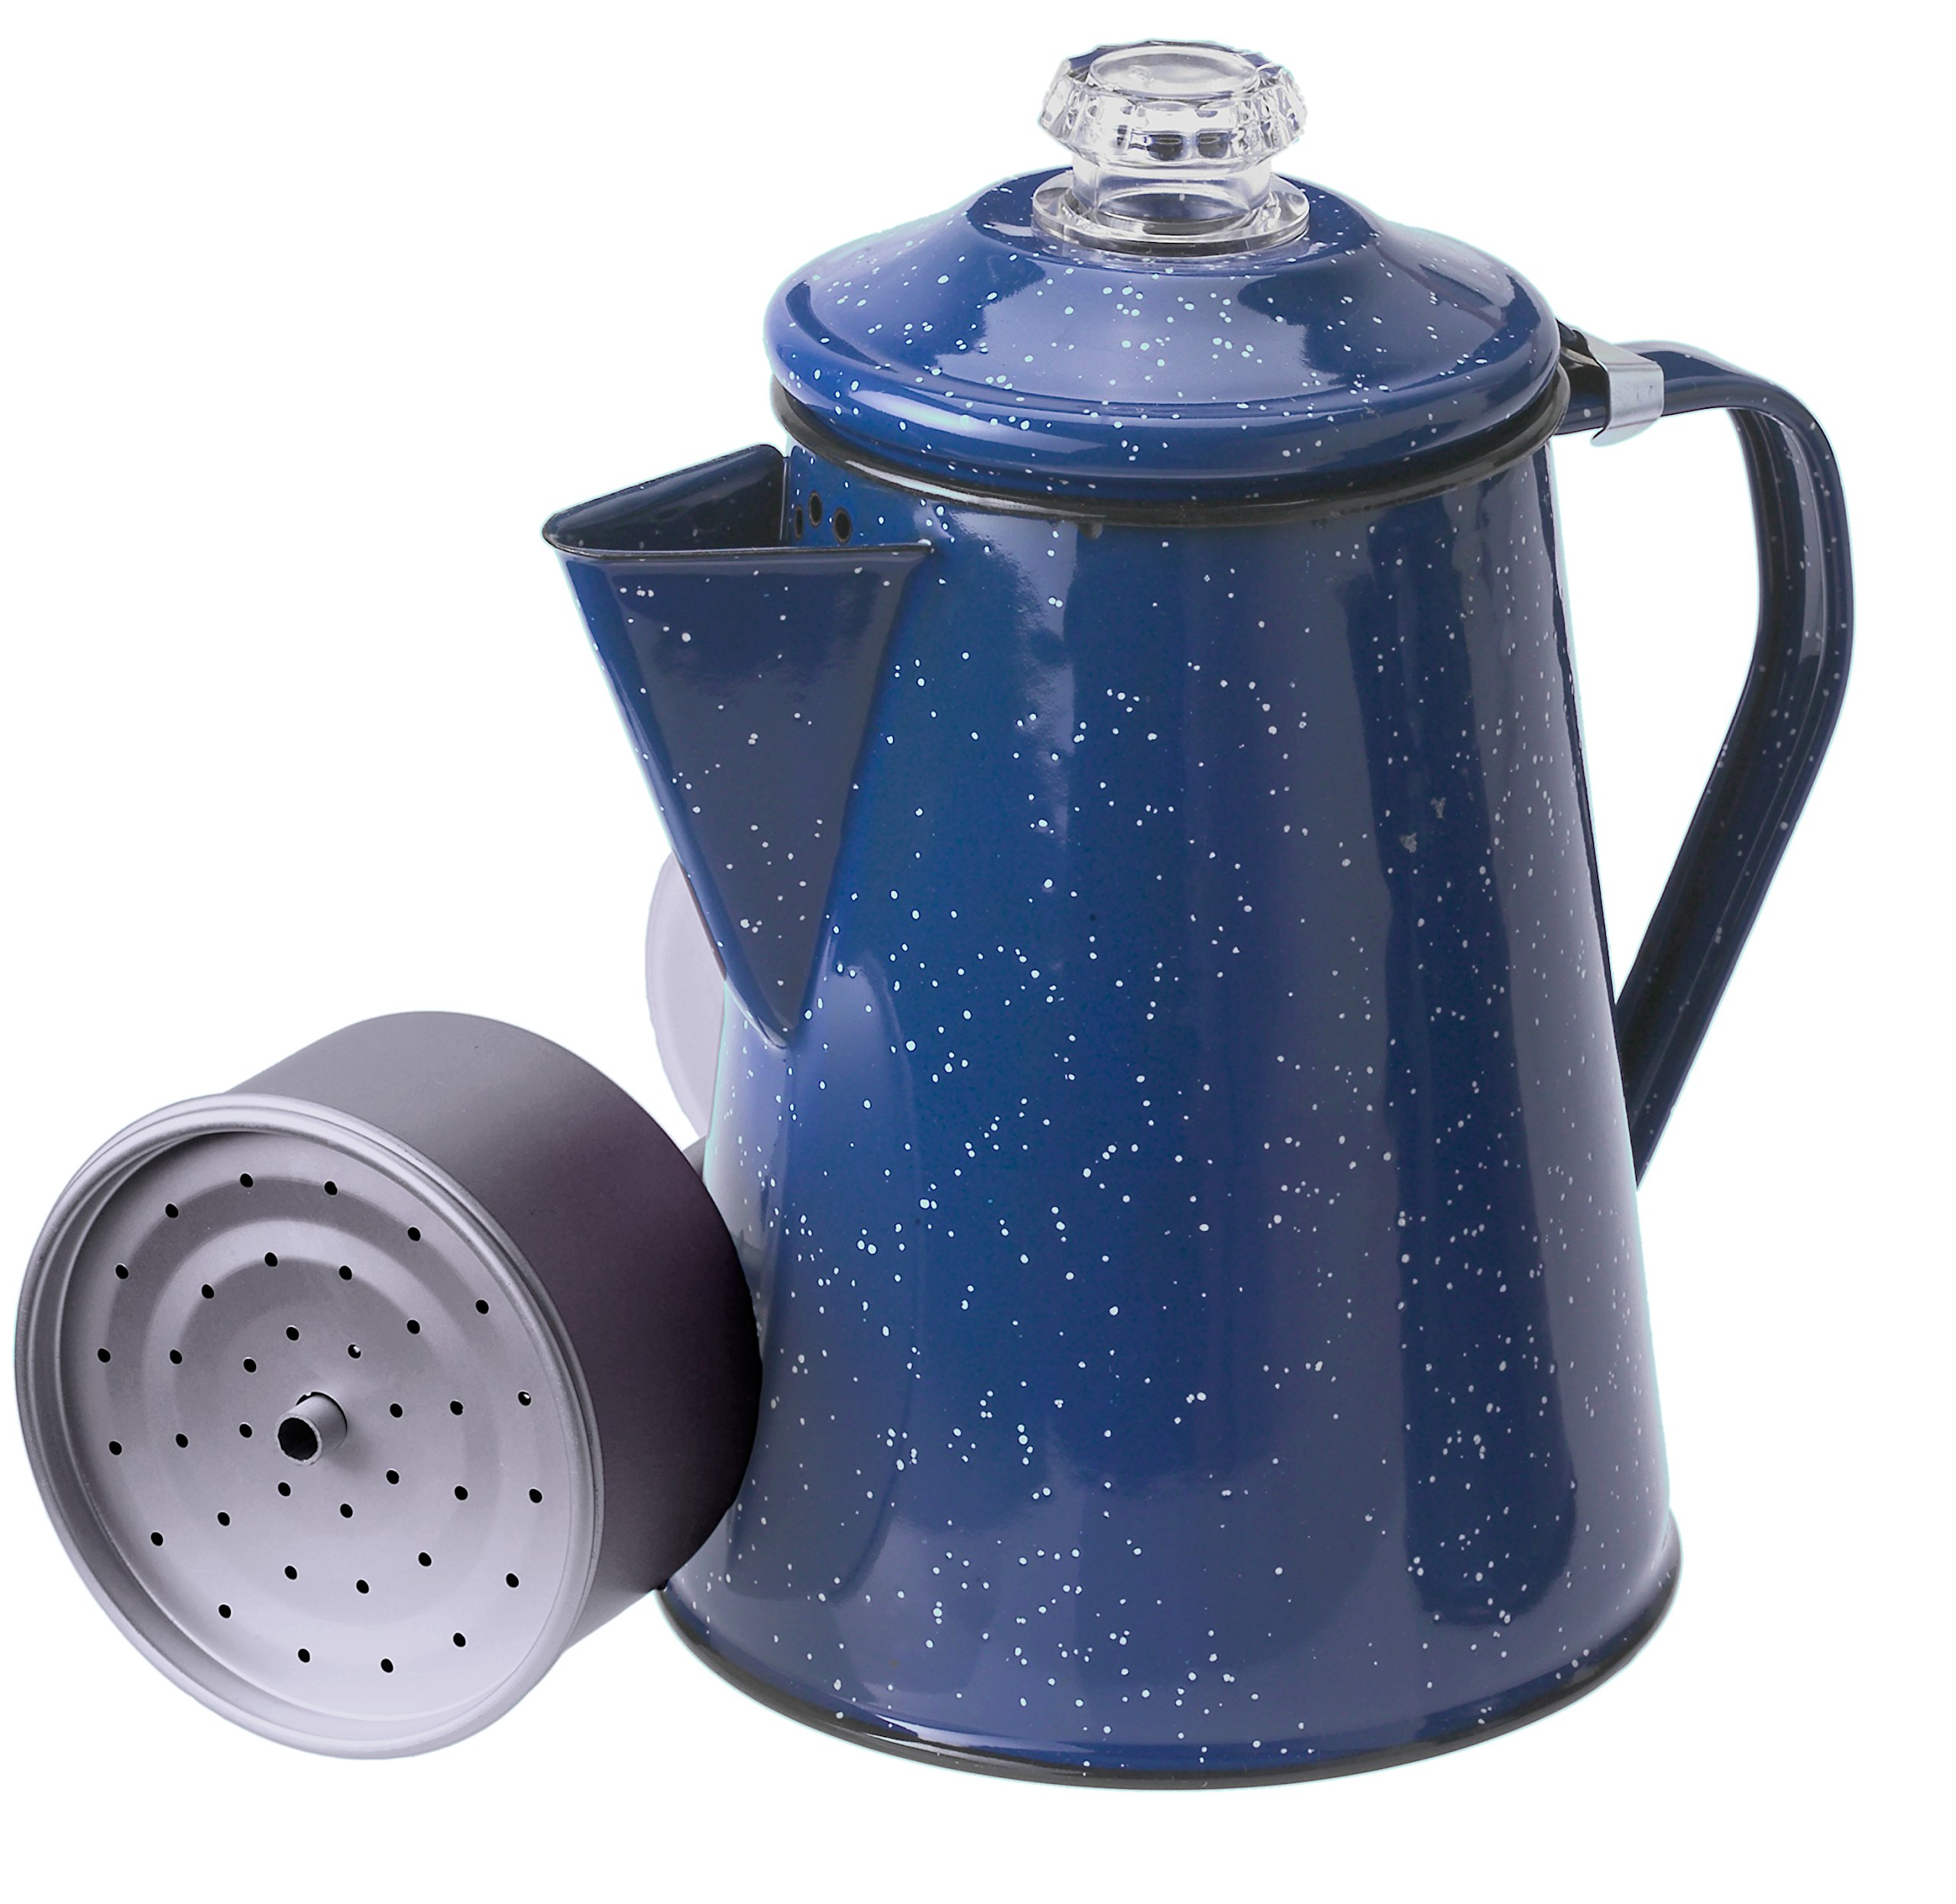 GSI Outdoors Enamelware Percolator Coffee Pot, 8-Cup, Blue by GSI Outdoors